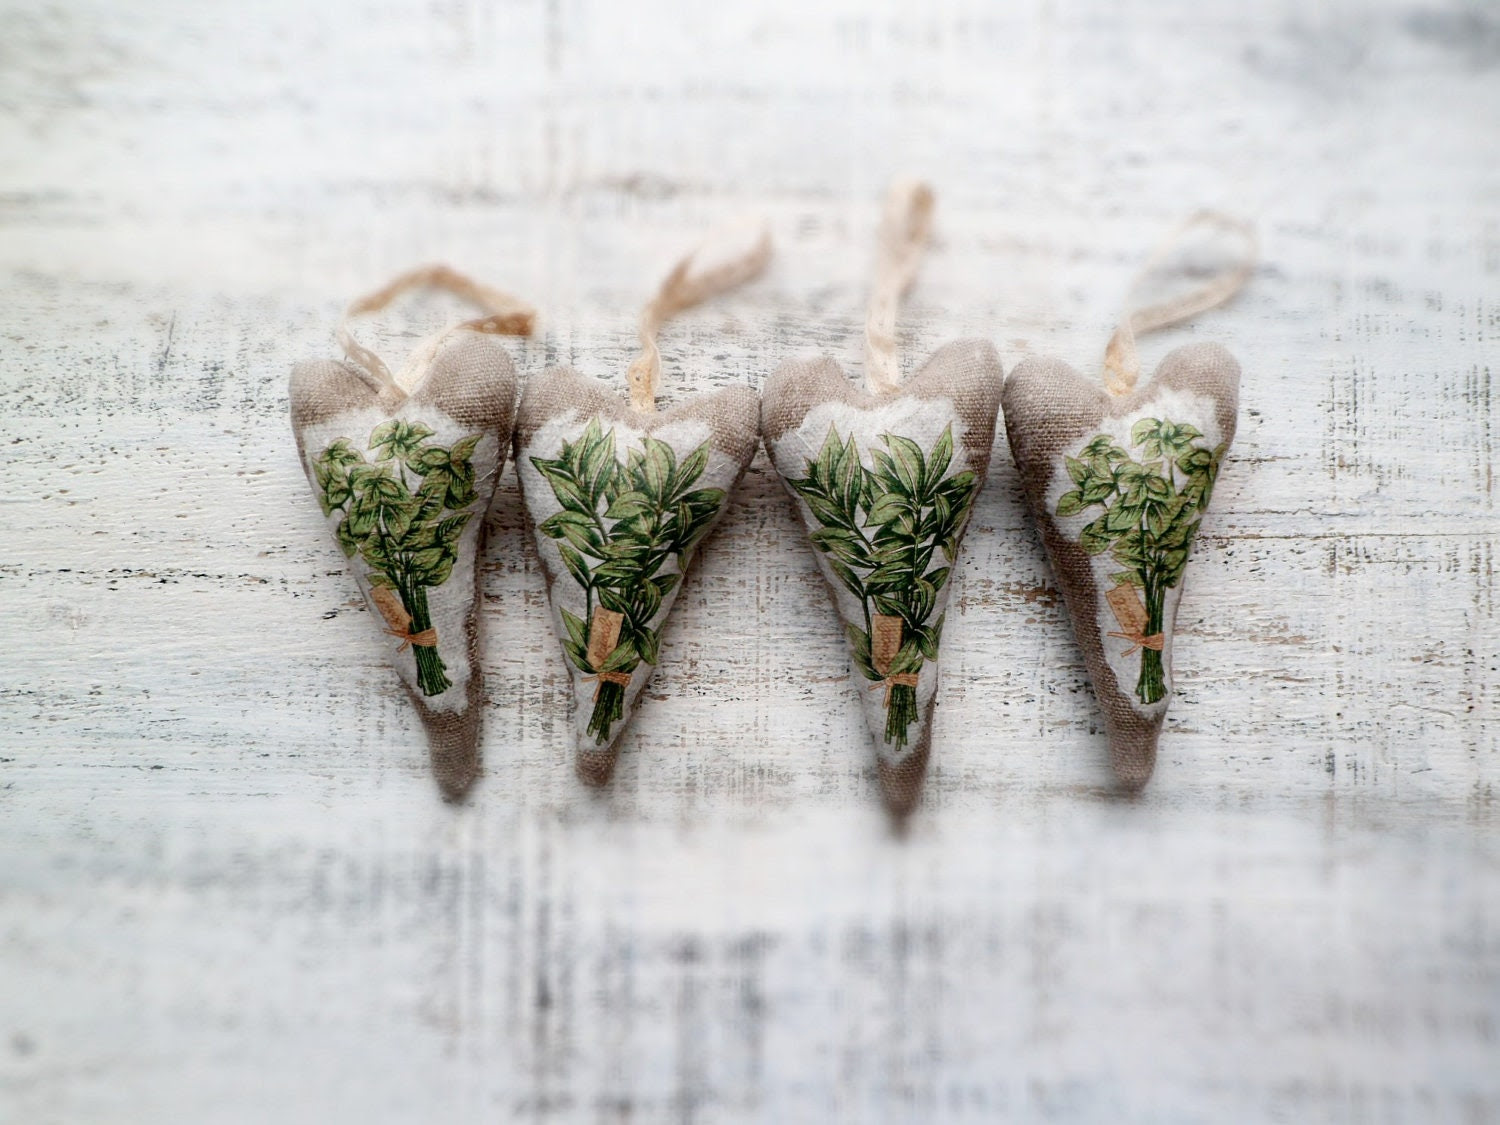 Set of 4 heart Christmas ornaments rustic herbal sachet rosemary spearmint basil grey green brown Christmas decor